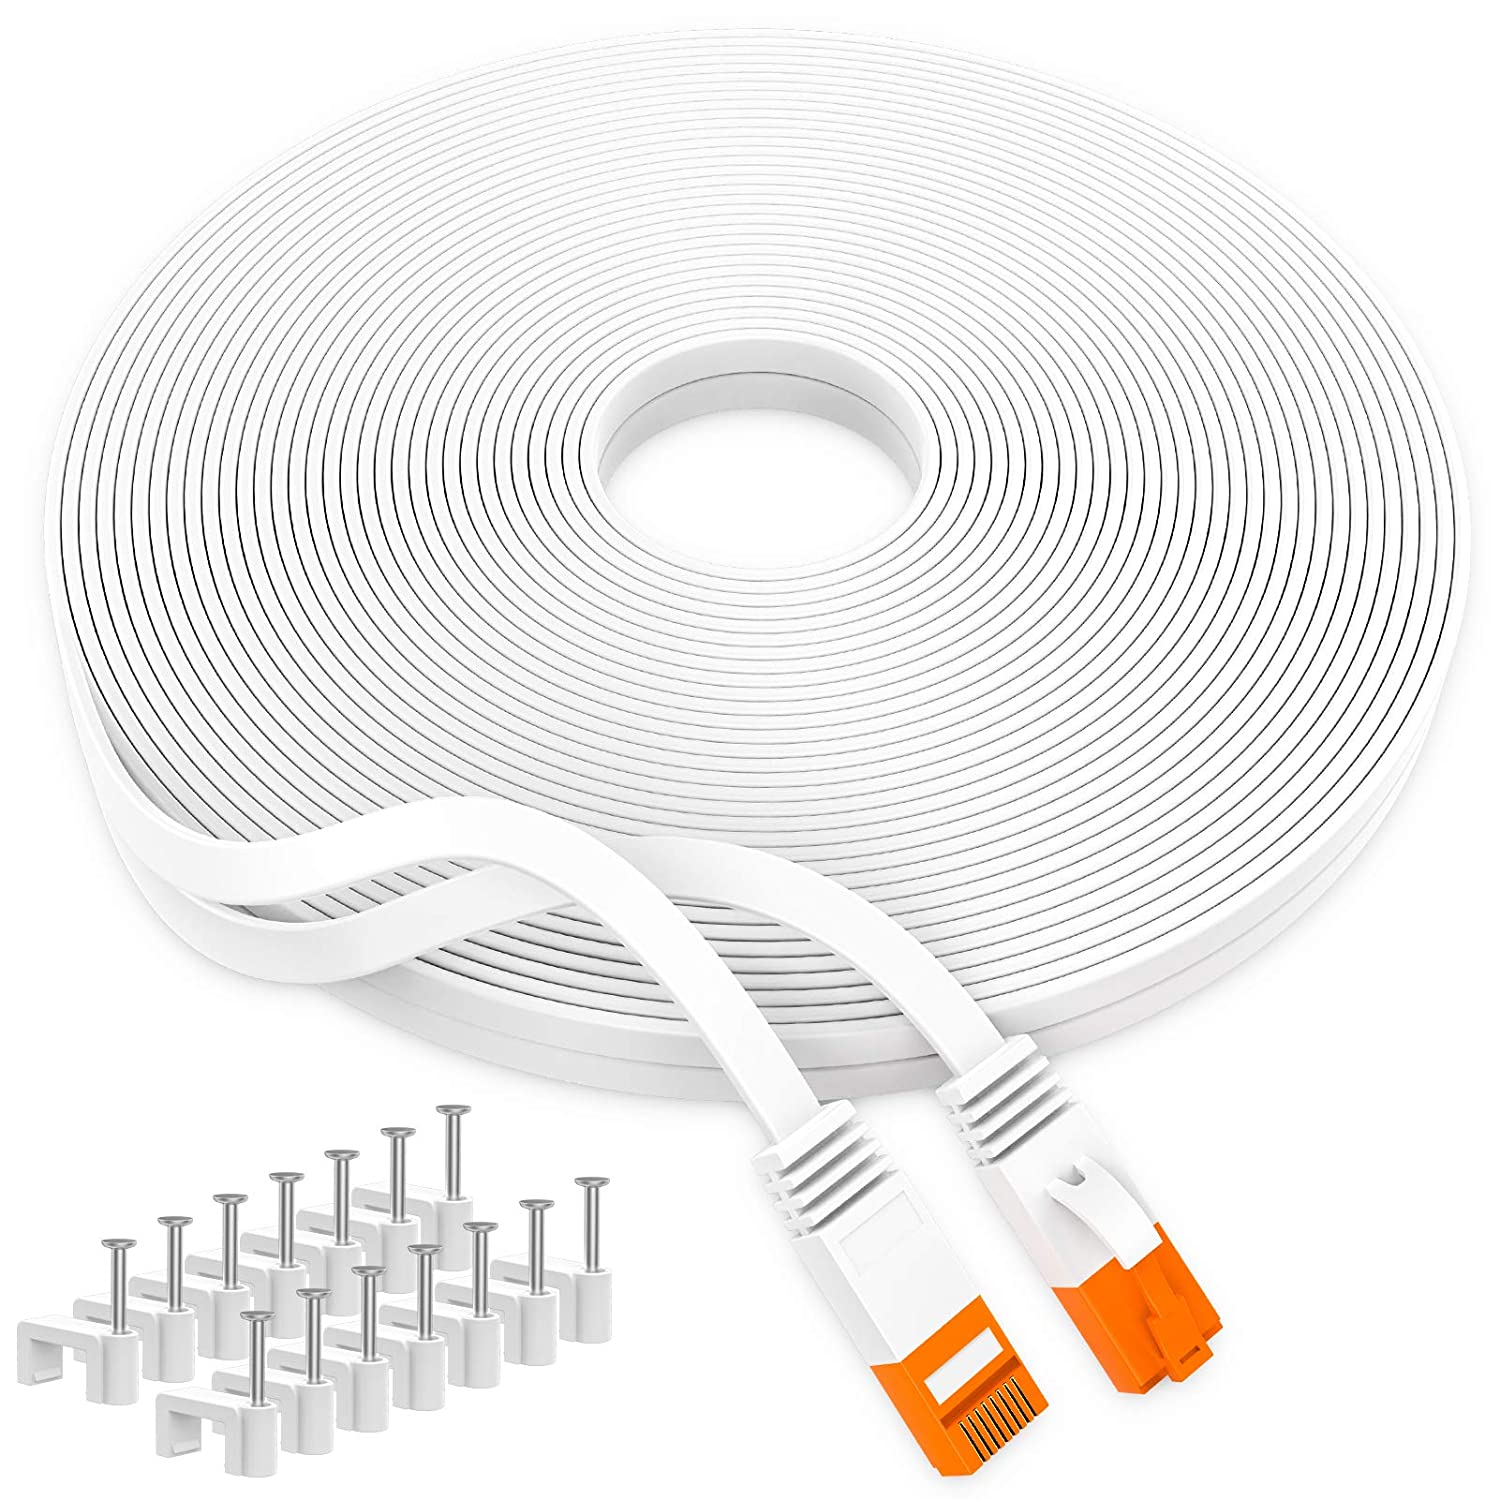 Boahcken Cat 6 Ethernet Cable White New Shipping Free Shipping Internet 50 ft Safety and trust Network LAN R